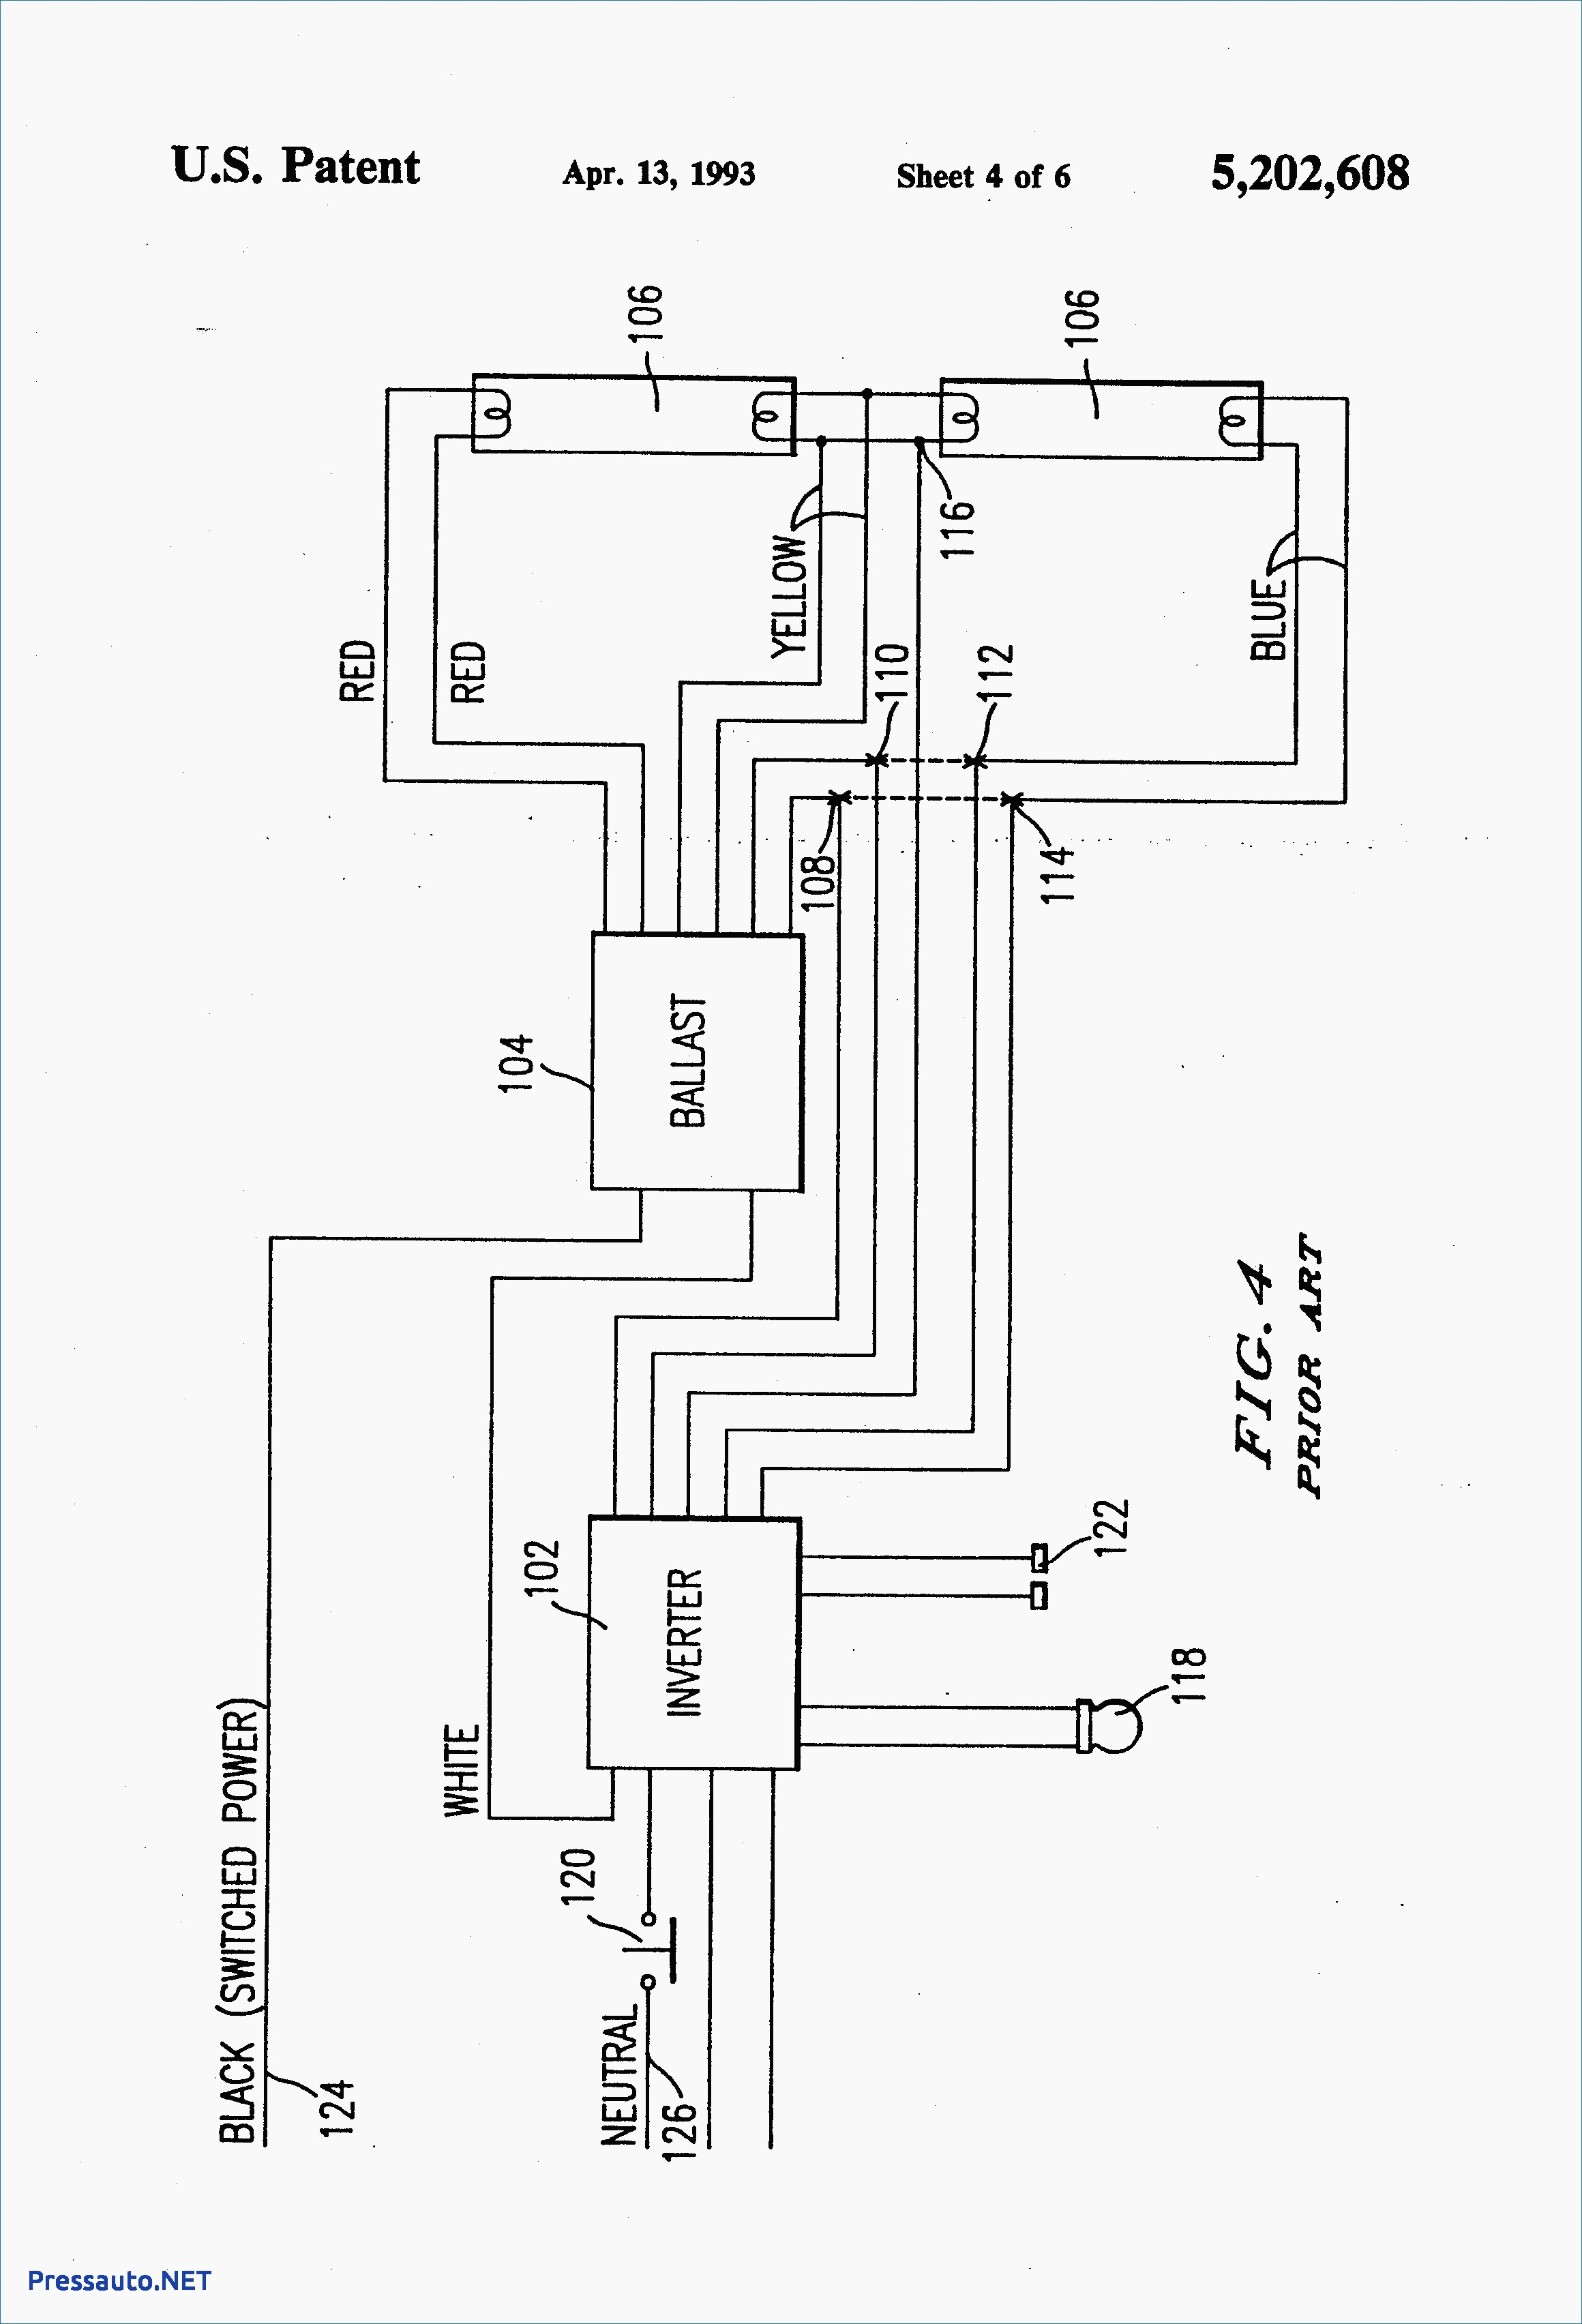 asco 918 wiring diagram Collection-Asco 918 Lighting Contactor Wiring Diagram Archives Gidn Co Save 4-m